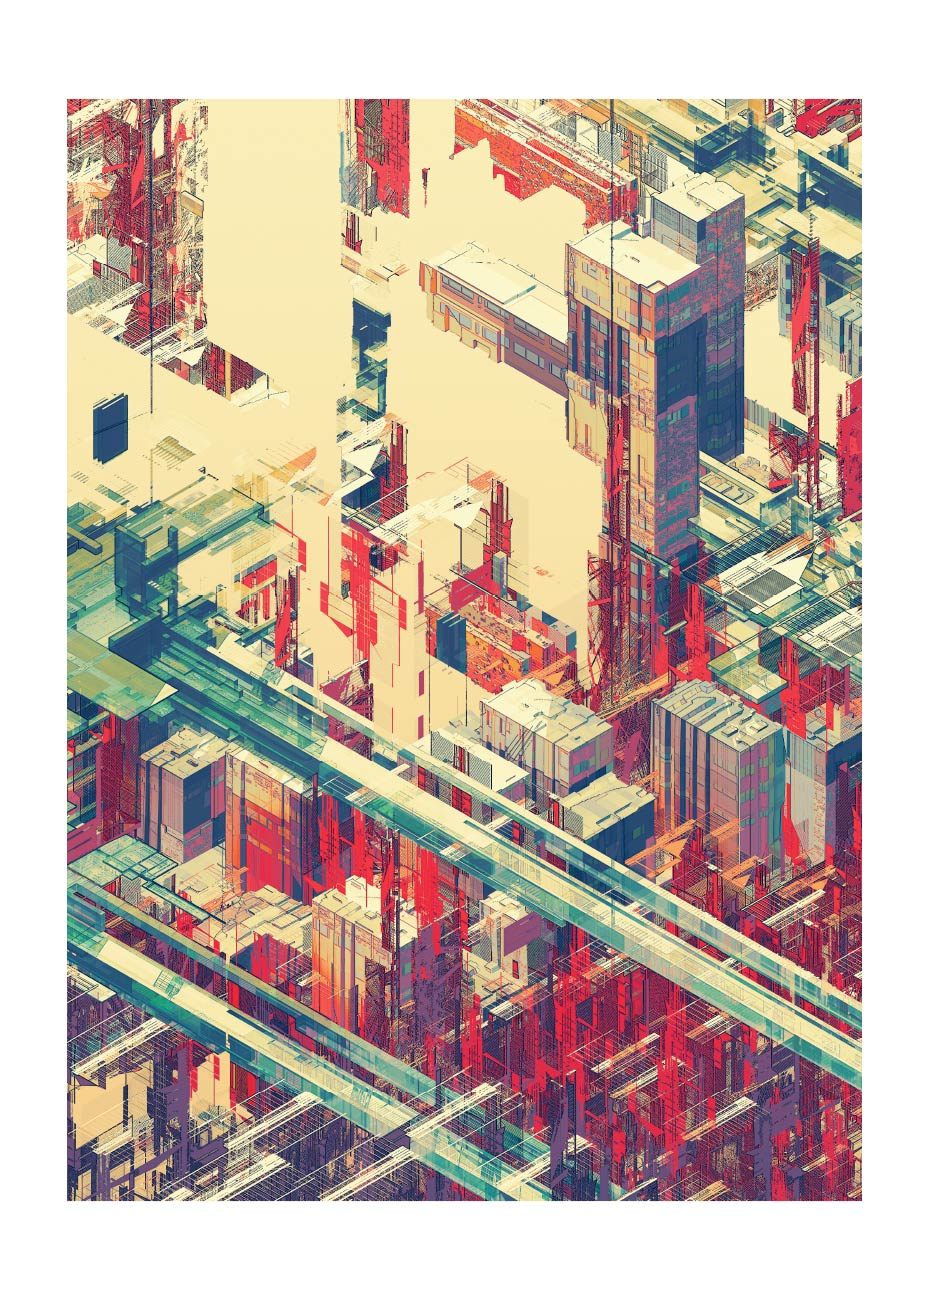 CITIES II 02